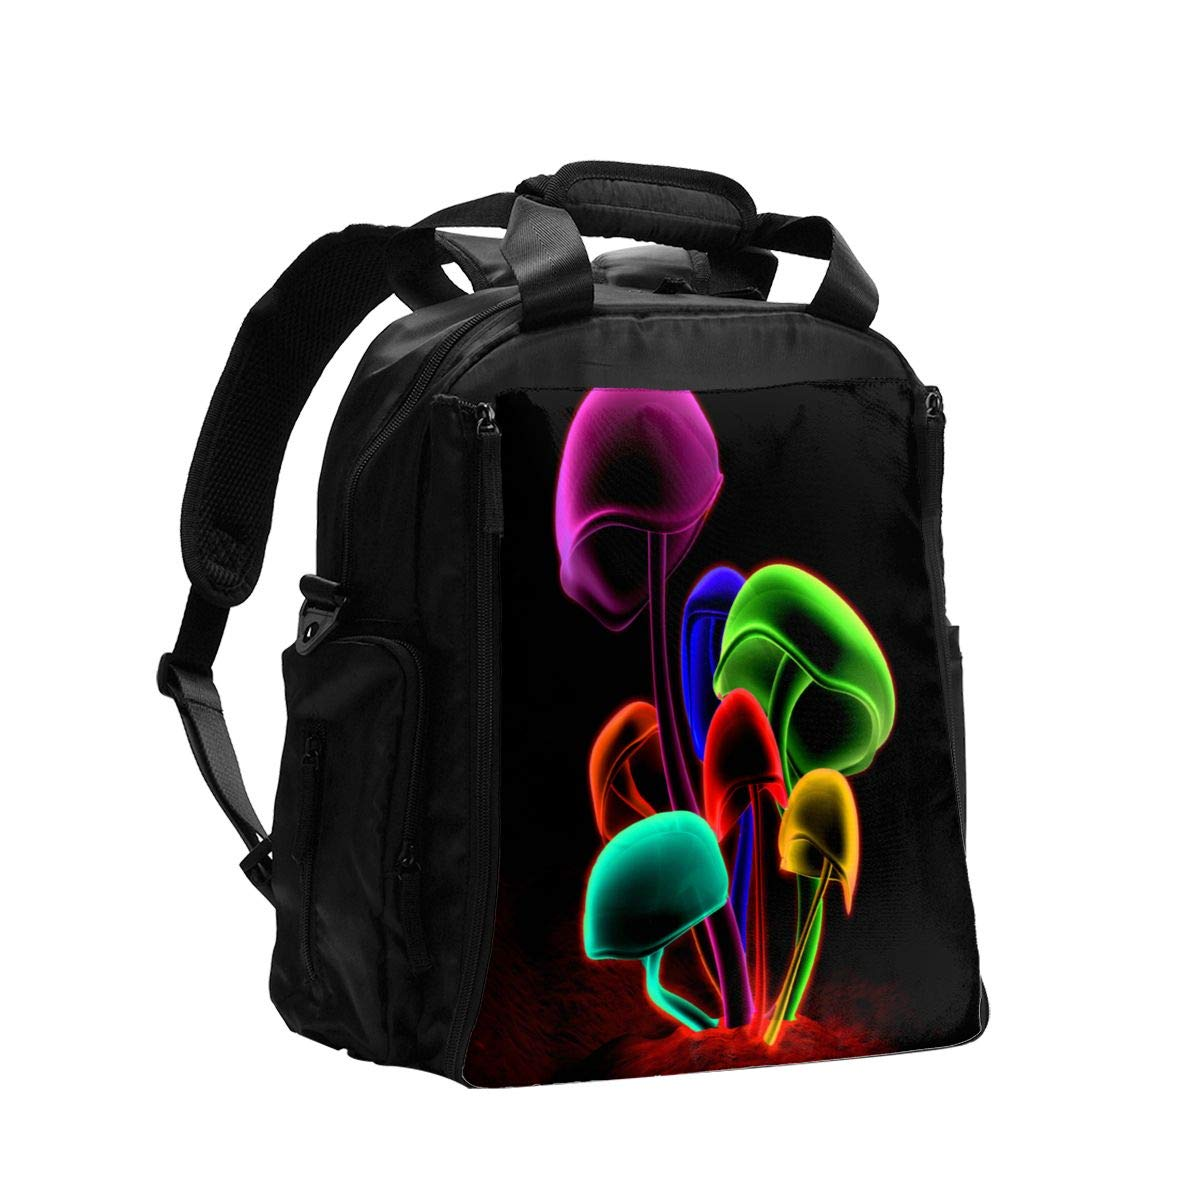 Psychedelic Colored Mushrooms Diaper Bag Backpack Travel Backpack Maternity Baby Changing Bags